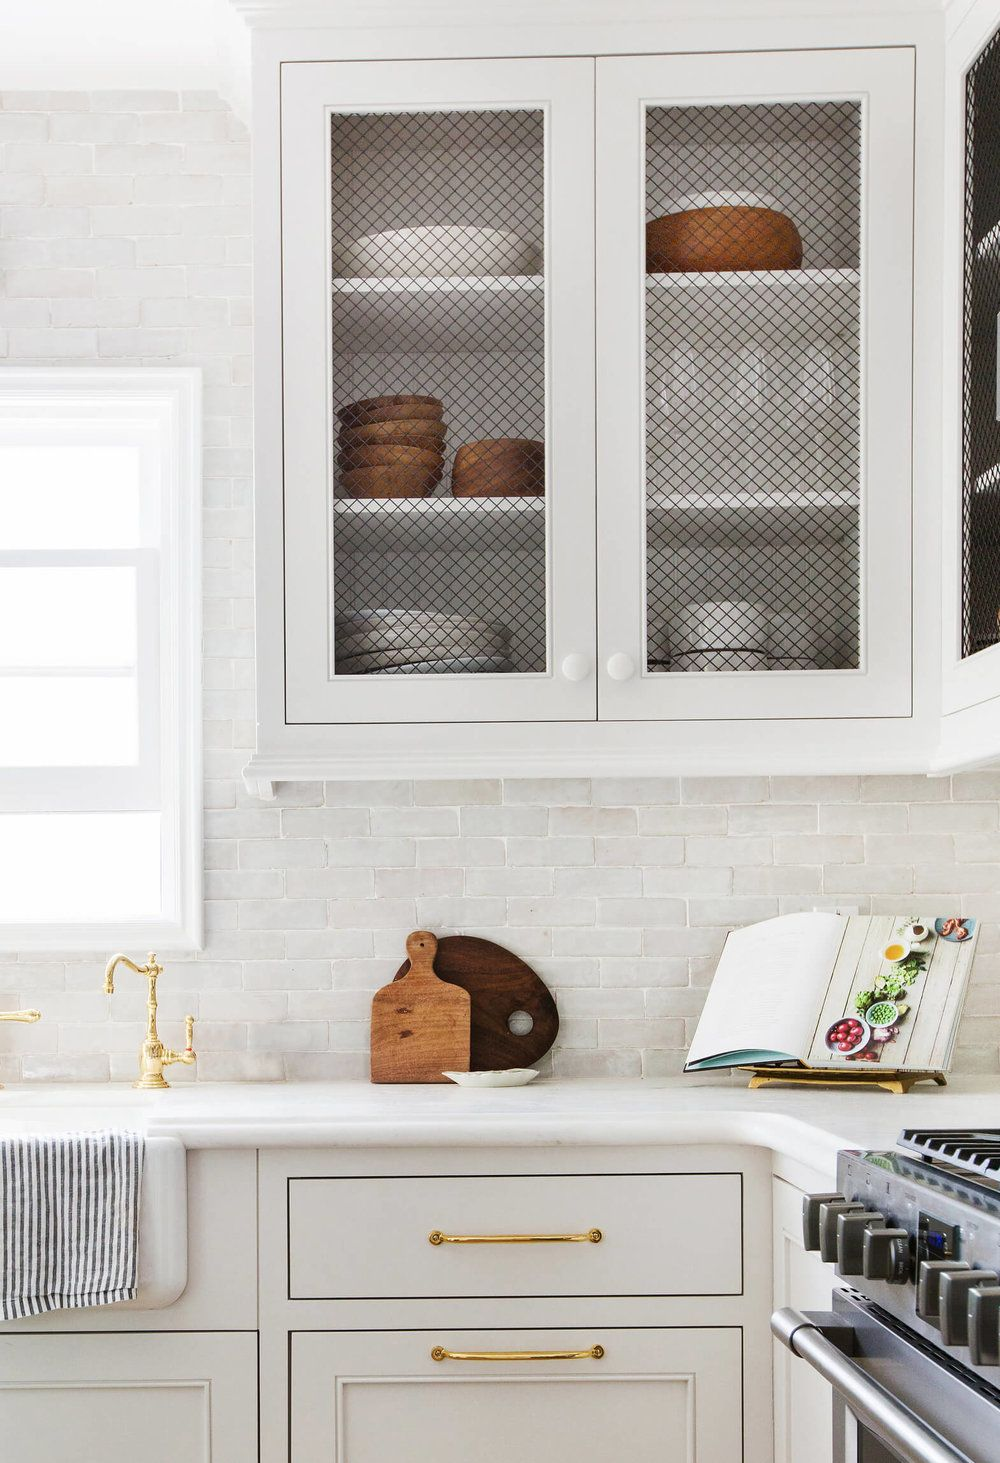 Trends We Love: Wire Mesh Cabinets | Studio mcgee, Wire mesh and Studio